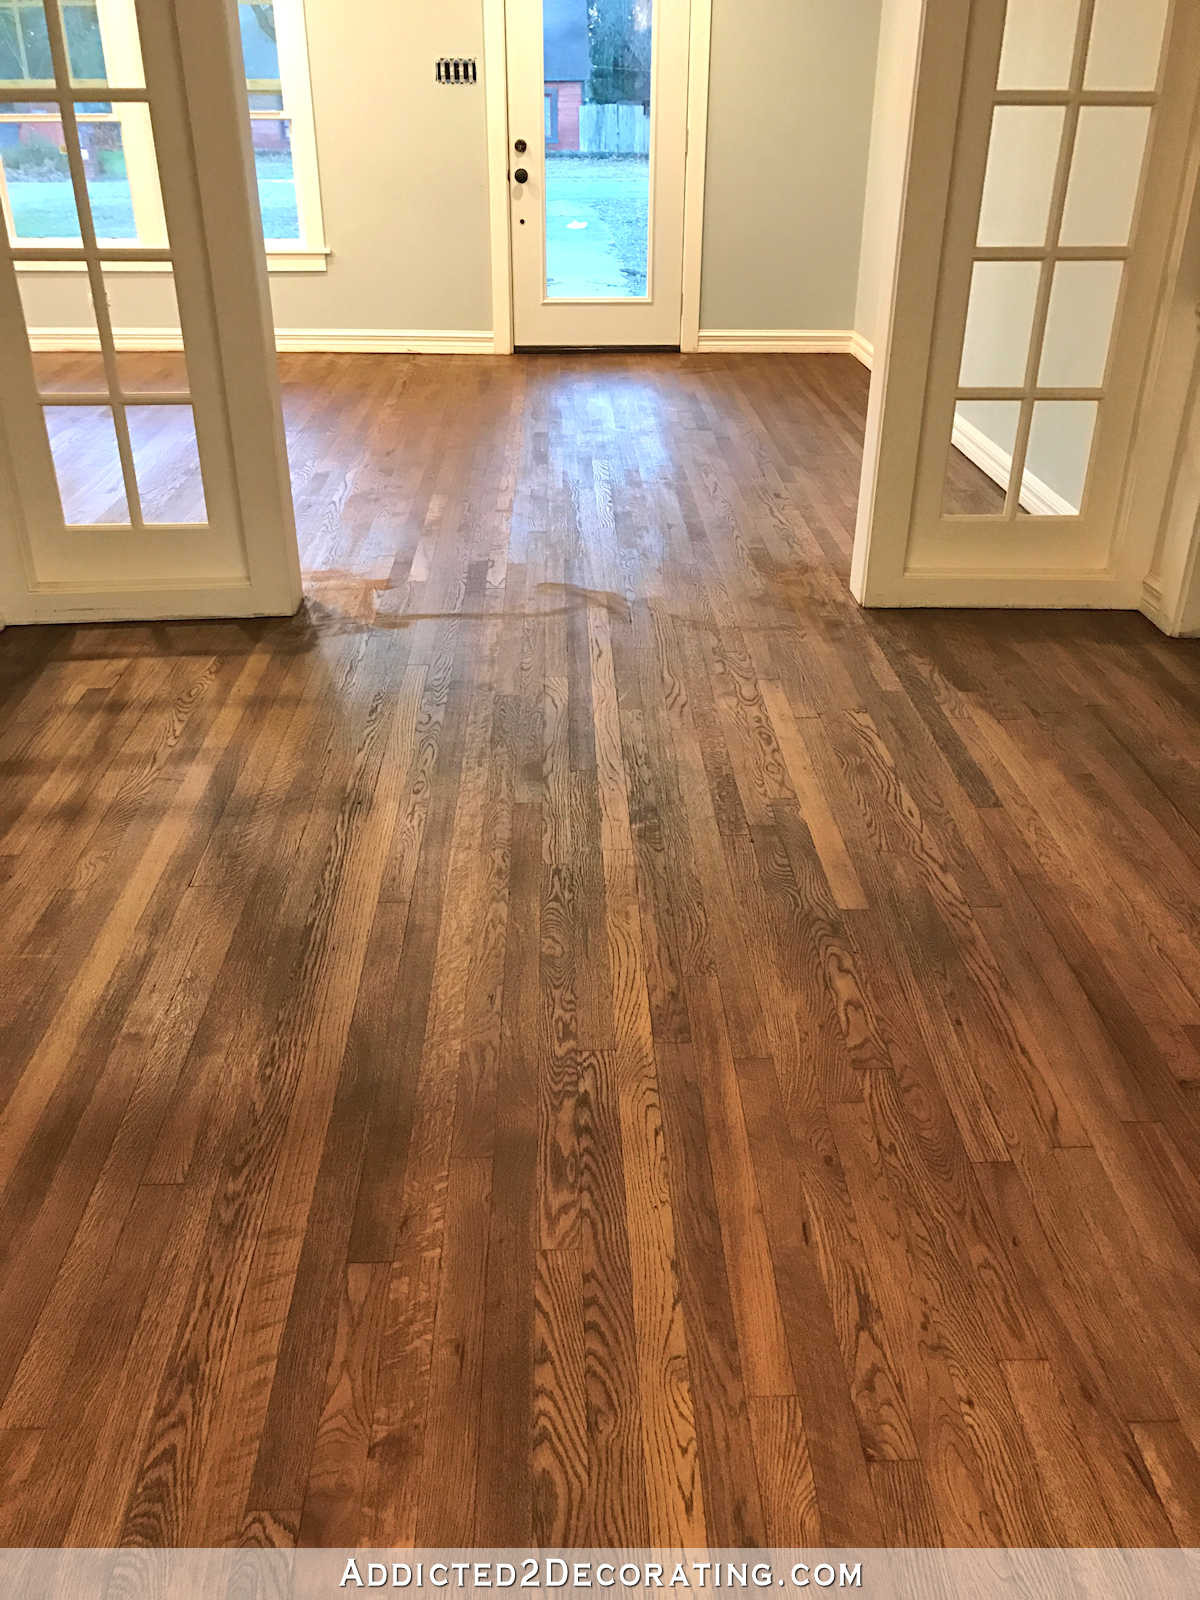 2 Different Color Hardwood Floors Of Adventures In Staining My Red Oak Hardwood Floors Products Process In Staining Red Oak Hardwood Floors 9 Stain On Entryway and Music Room Floors